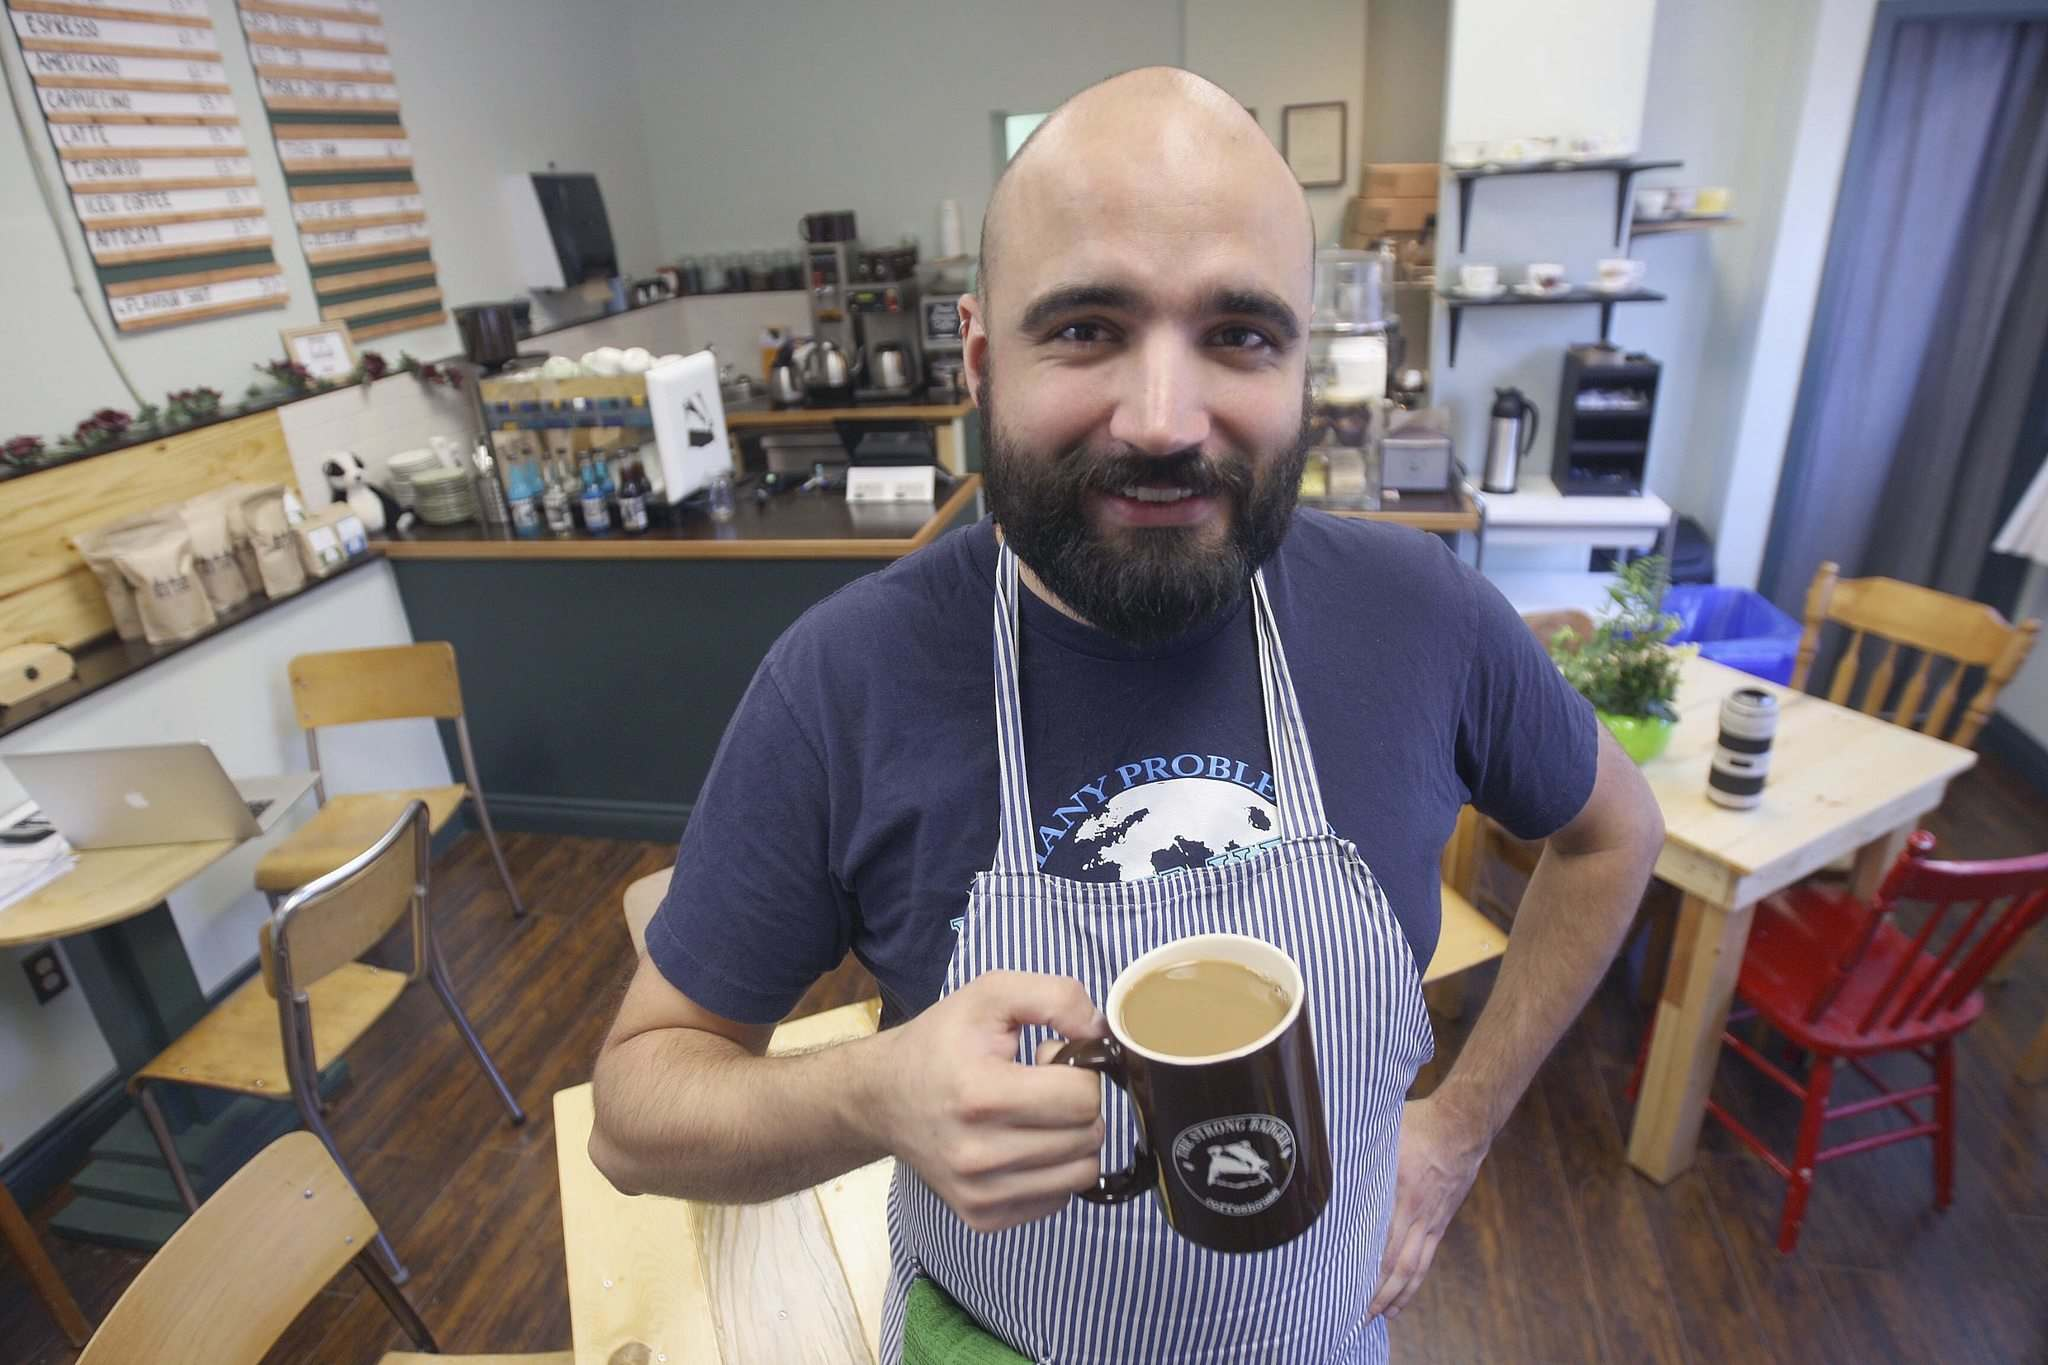 JOE BRYKSA / WINNIPEG FREE PRESS</p><p>Brock Peters, owner of the Strong Badger Coffeehouse at 679 Sargent Ave., searched the city before settling his new business in the young, diverse, walkable West End neighbourhood.</p></p>